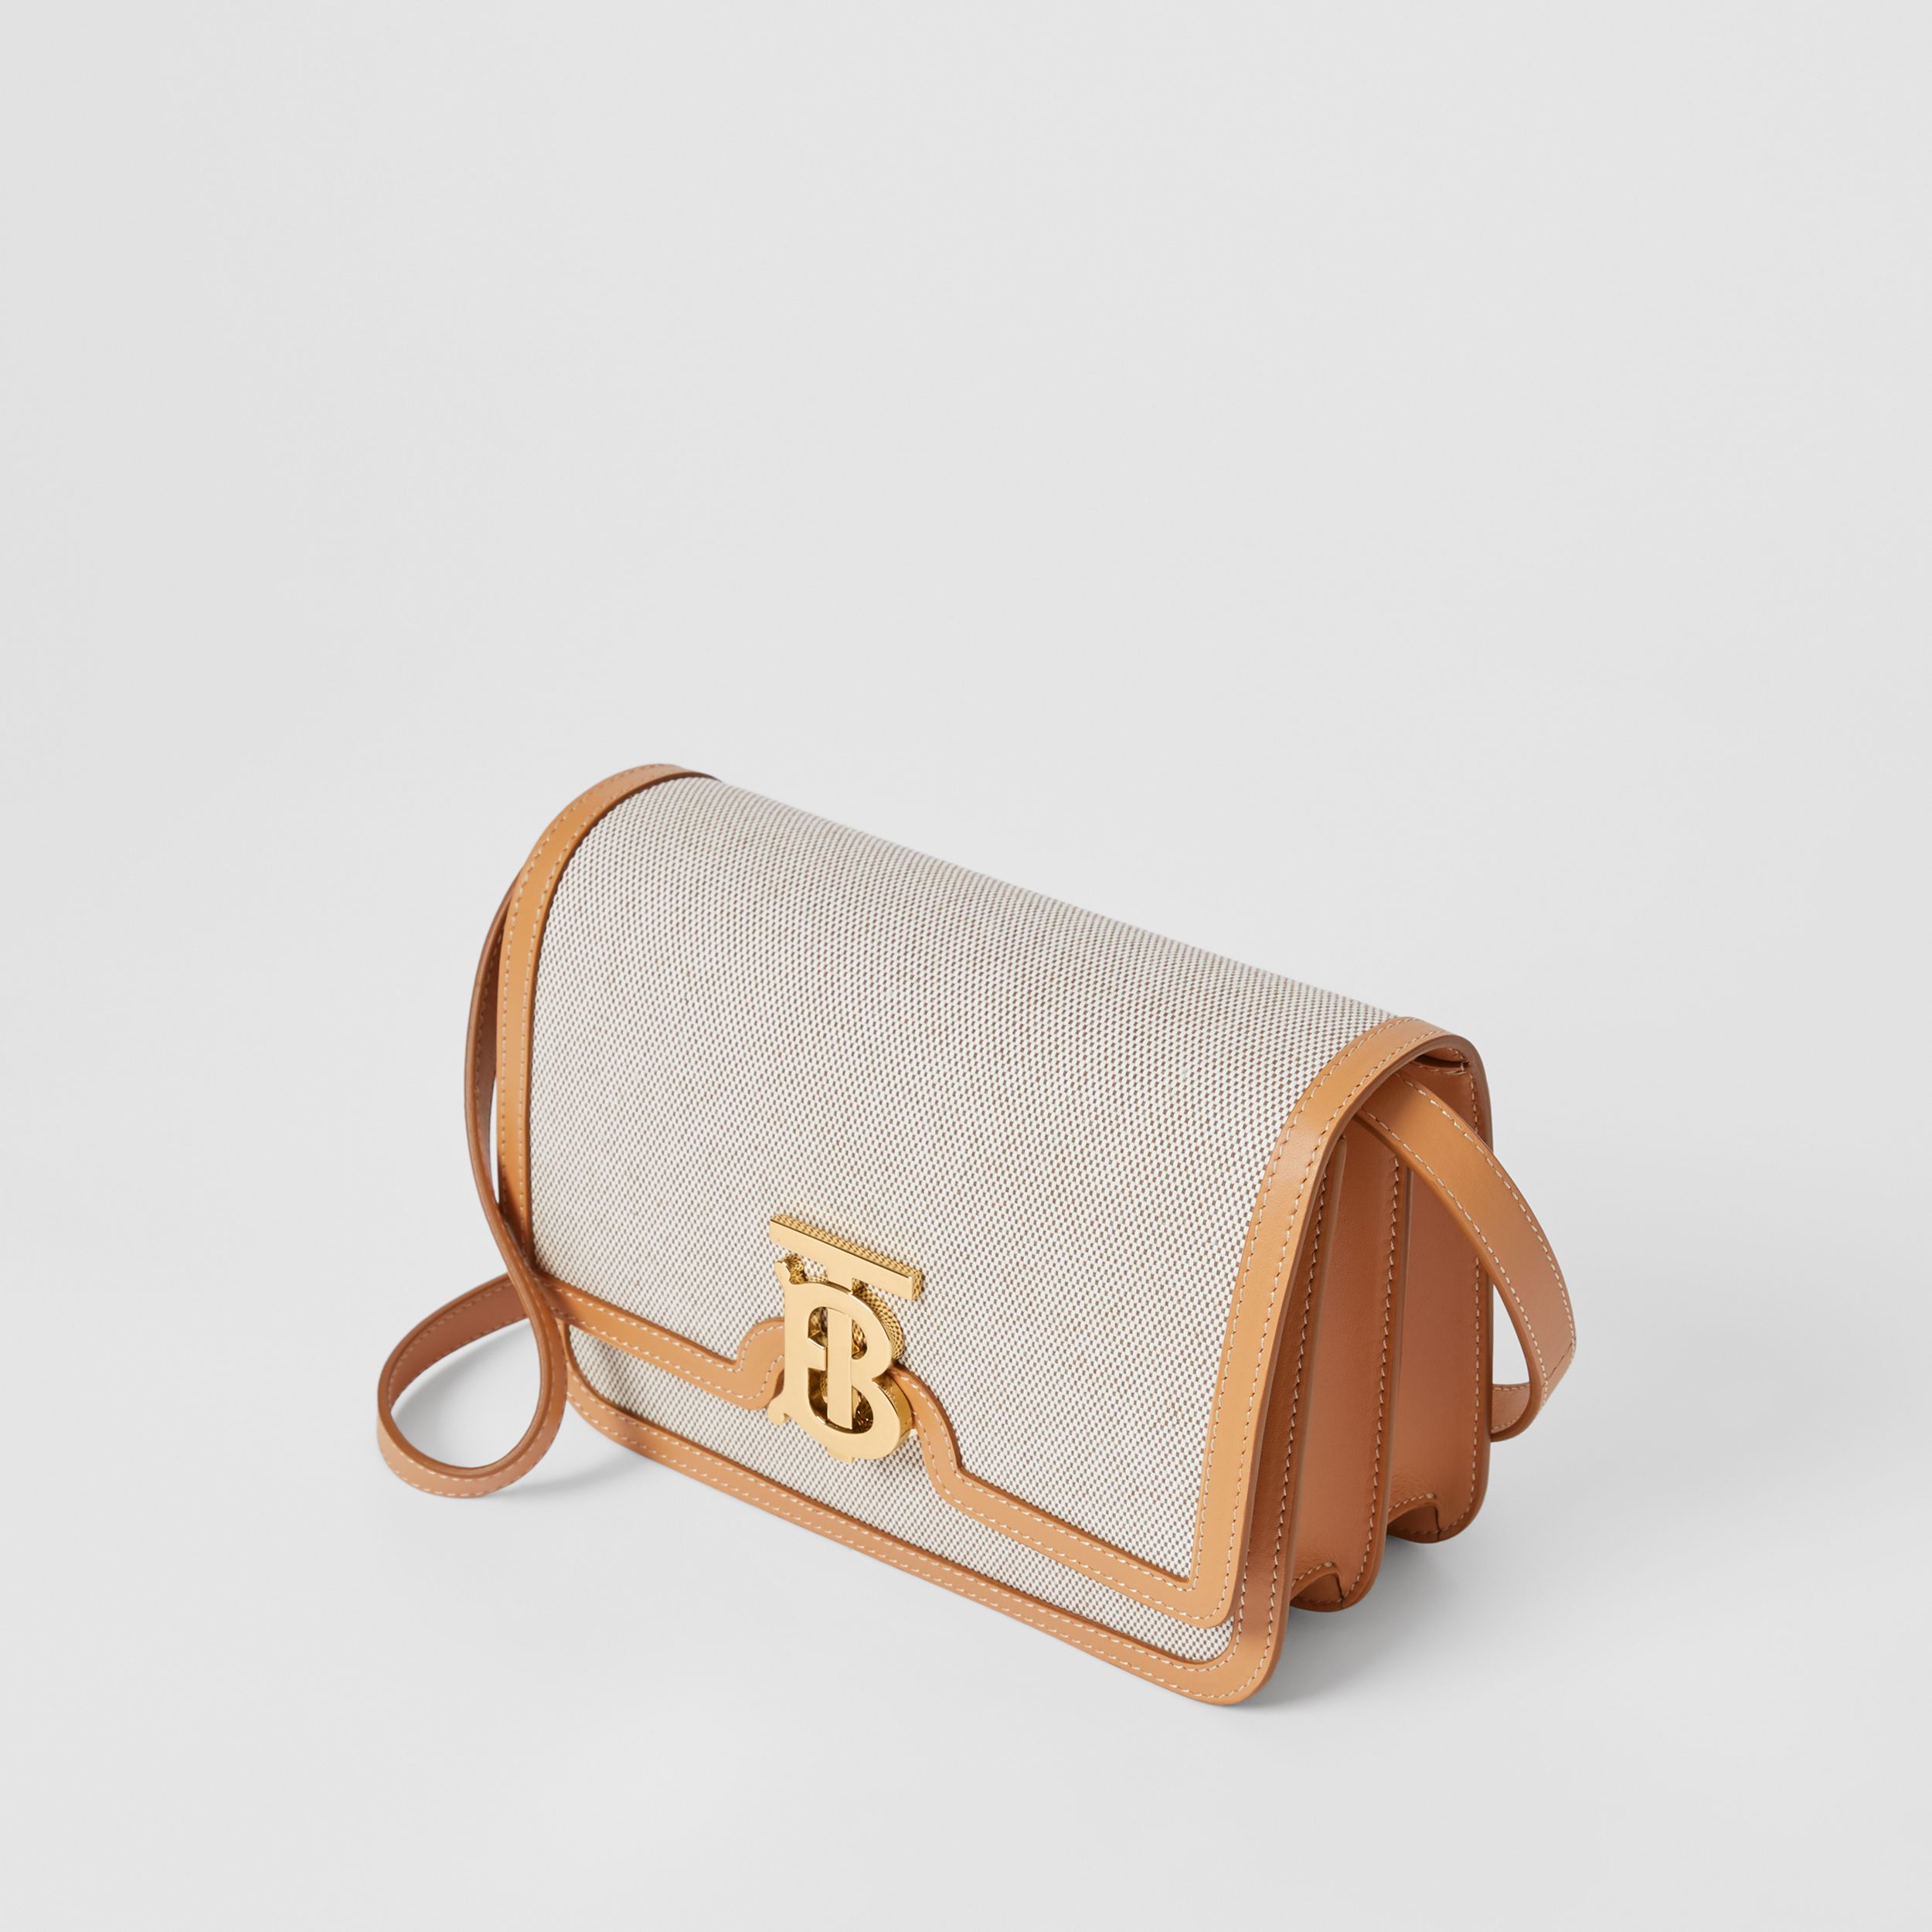 Small Two-tone Canvas and Leather TB Bag in Soft Fawn/warm Sand - Women | Burberry - 4